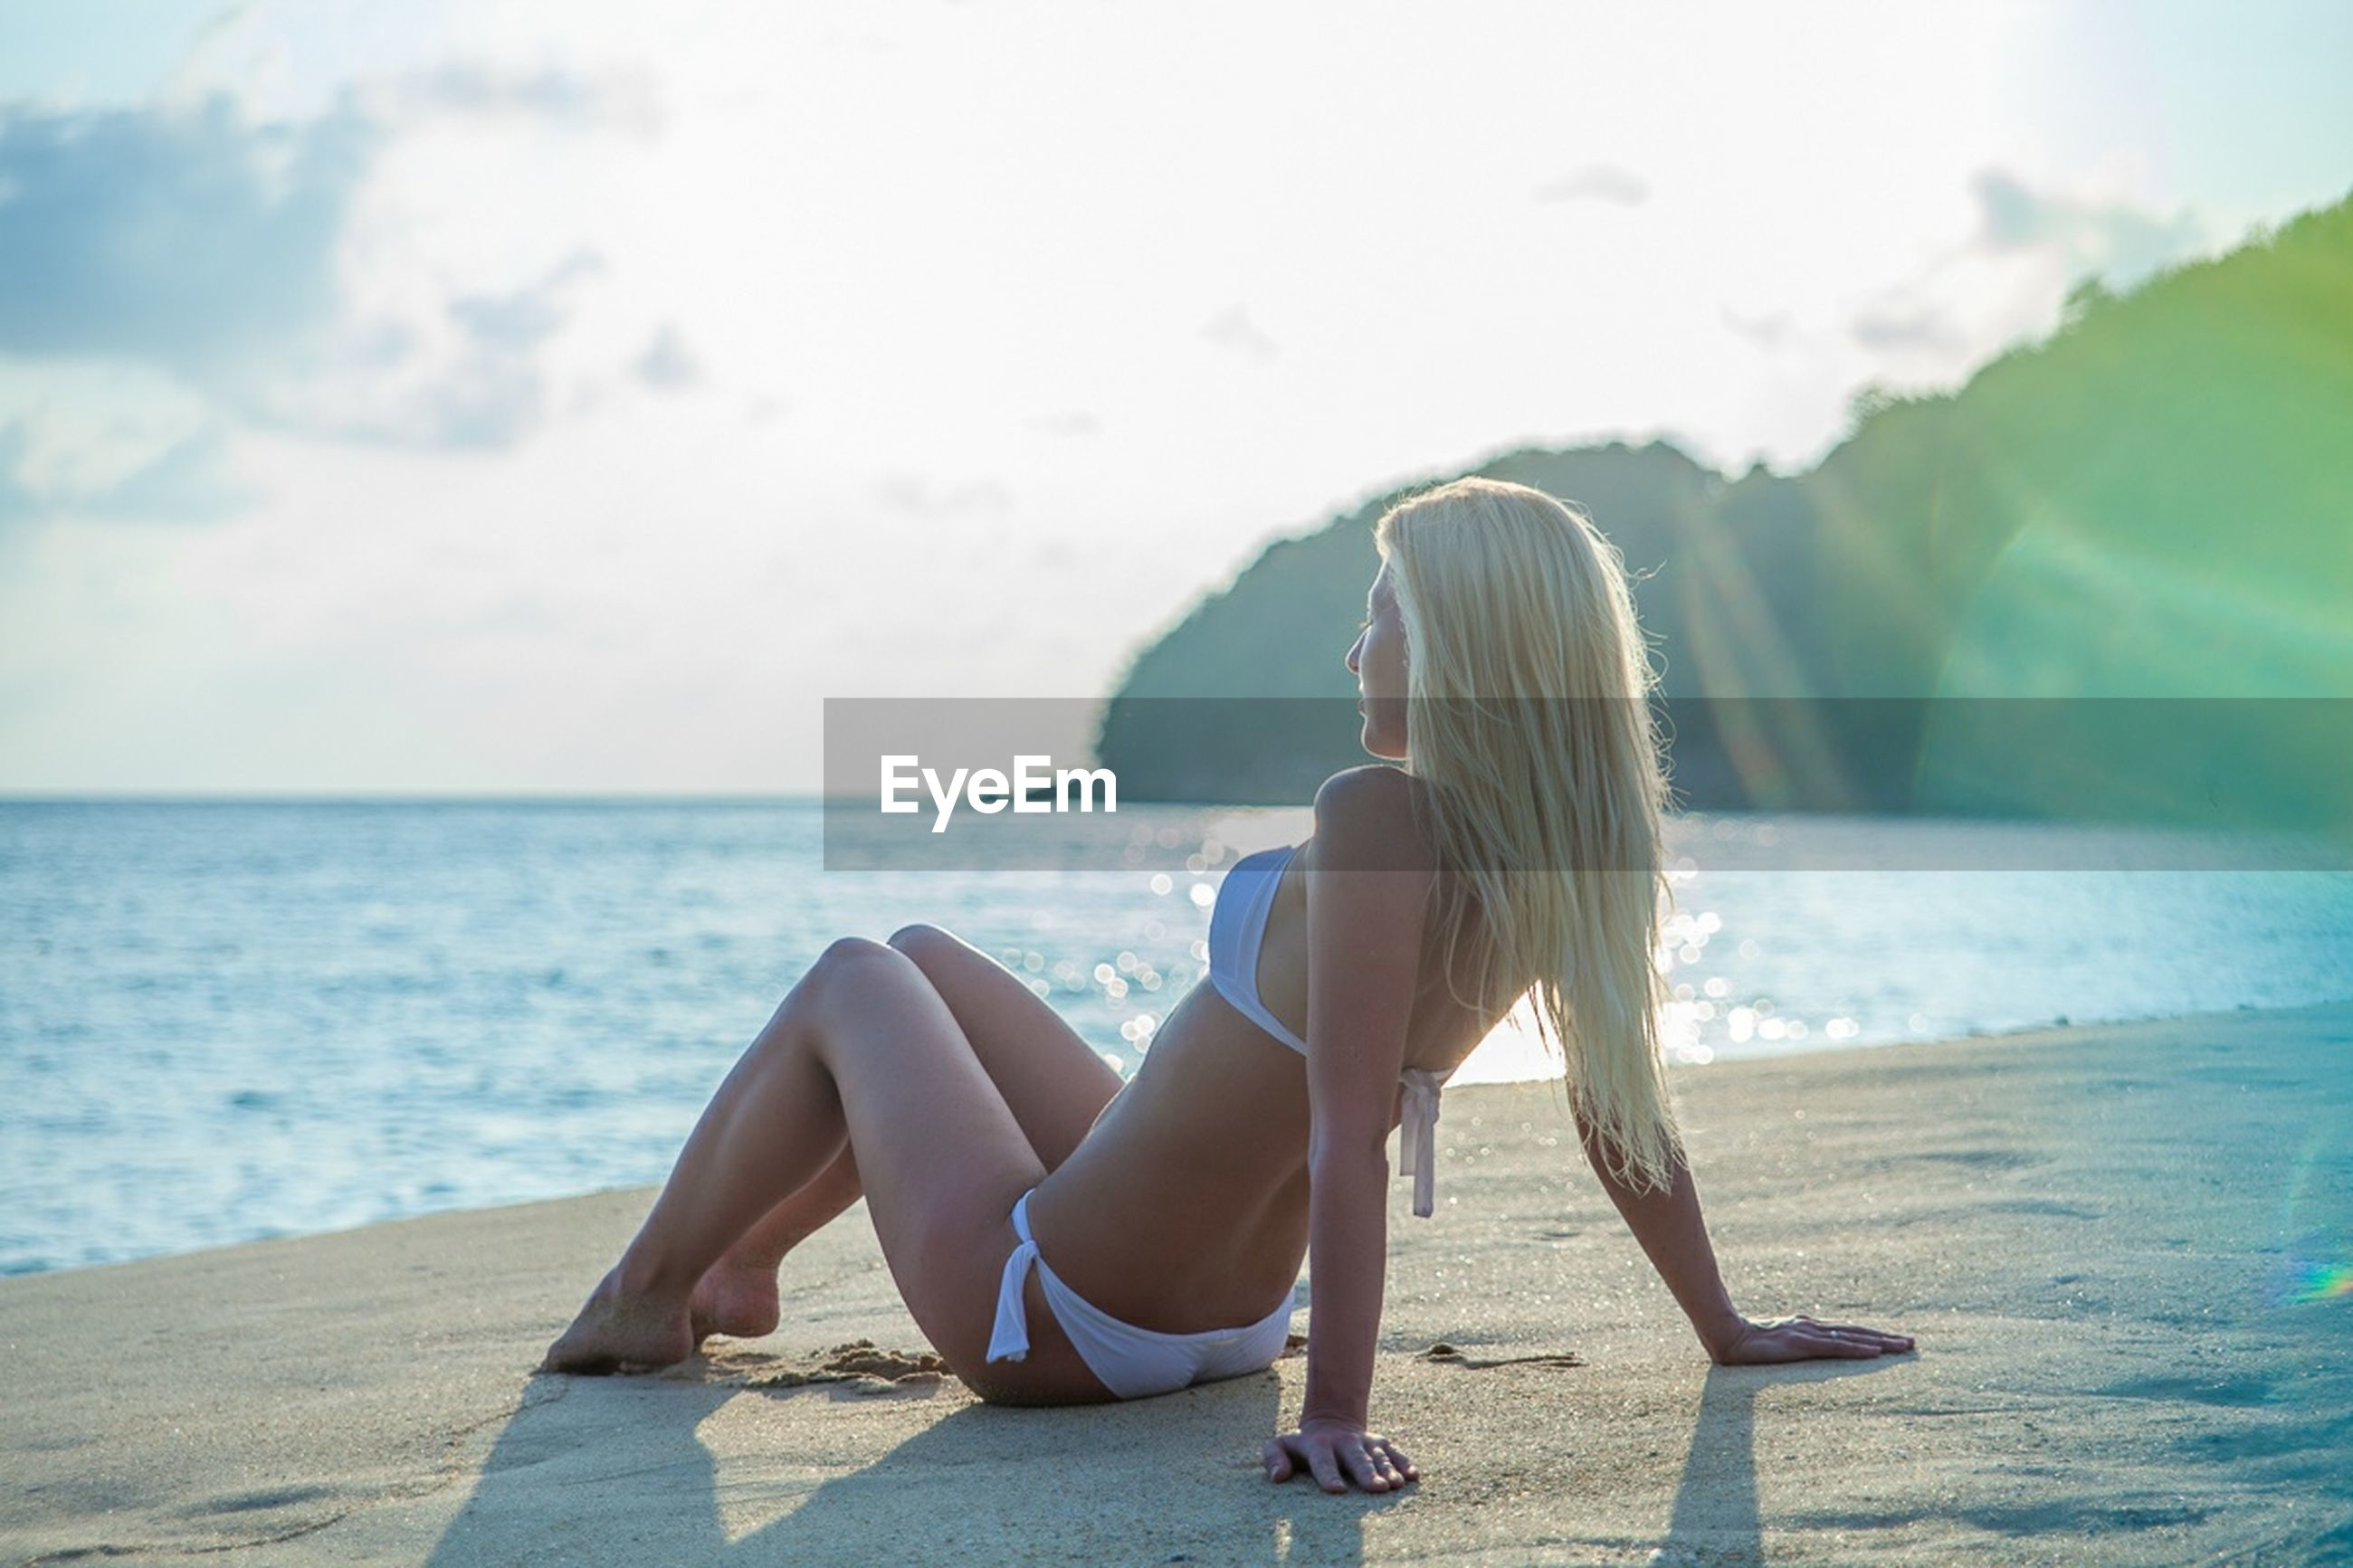 sea, horizon over water, beach, water, leisure activity, lifestyles, sky, rear view, shore, person, vacations, scenics, relaxation, tranquility, tranquil scene, sand, beauty in nature, nature